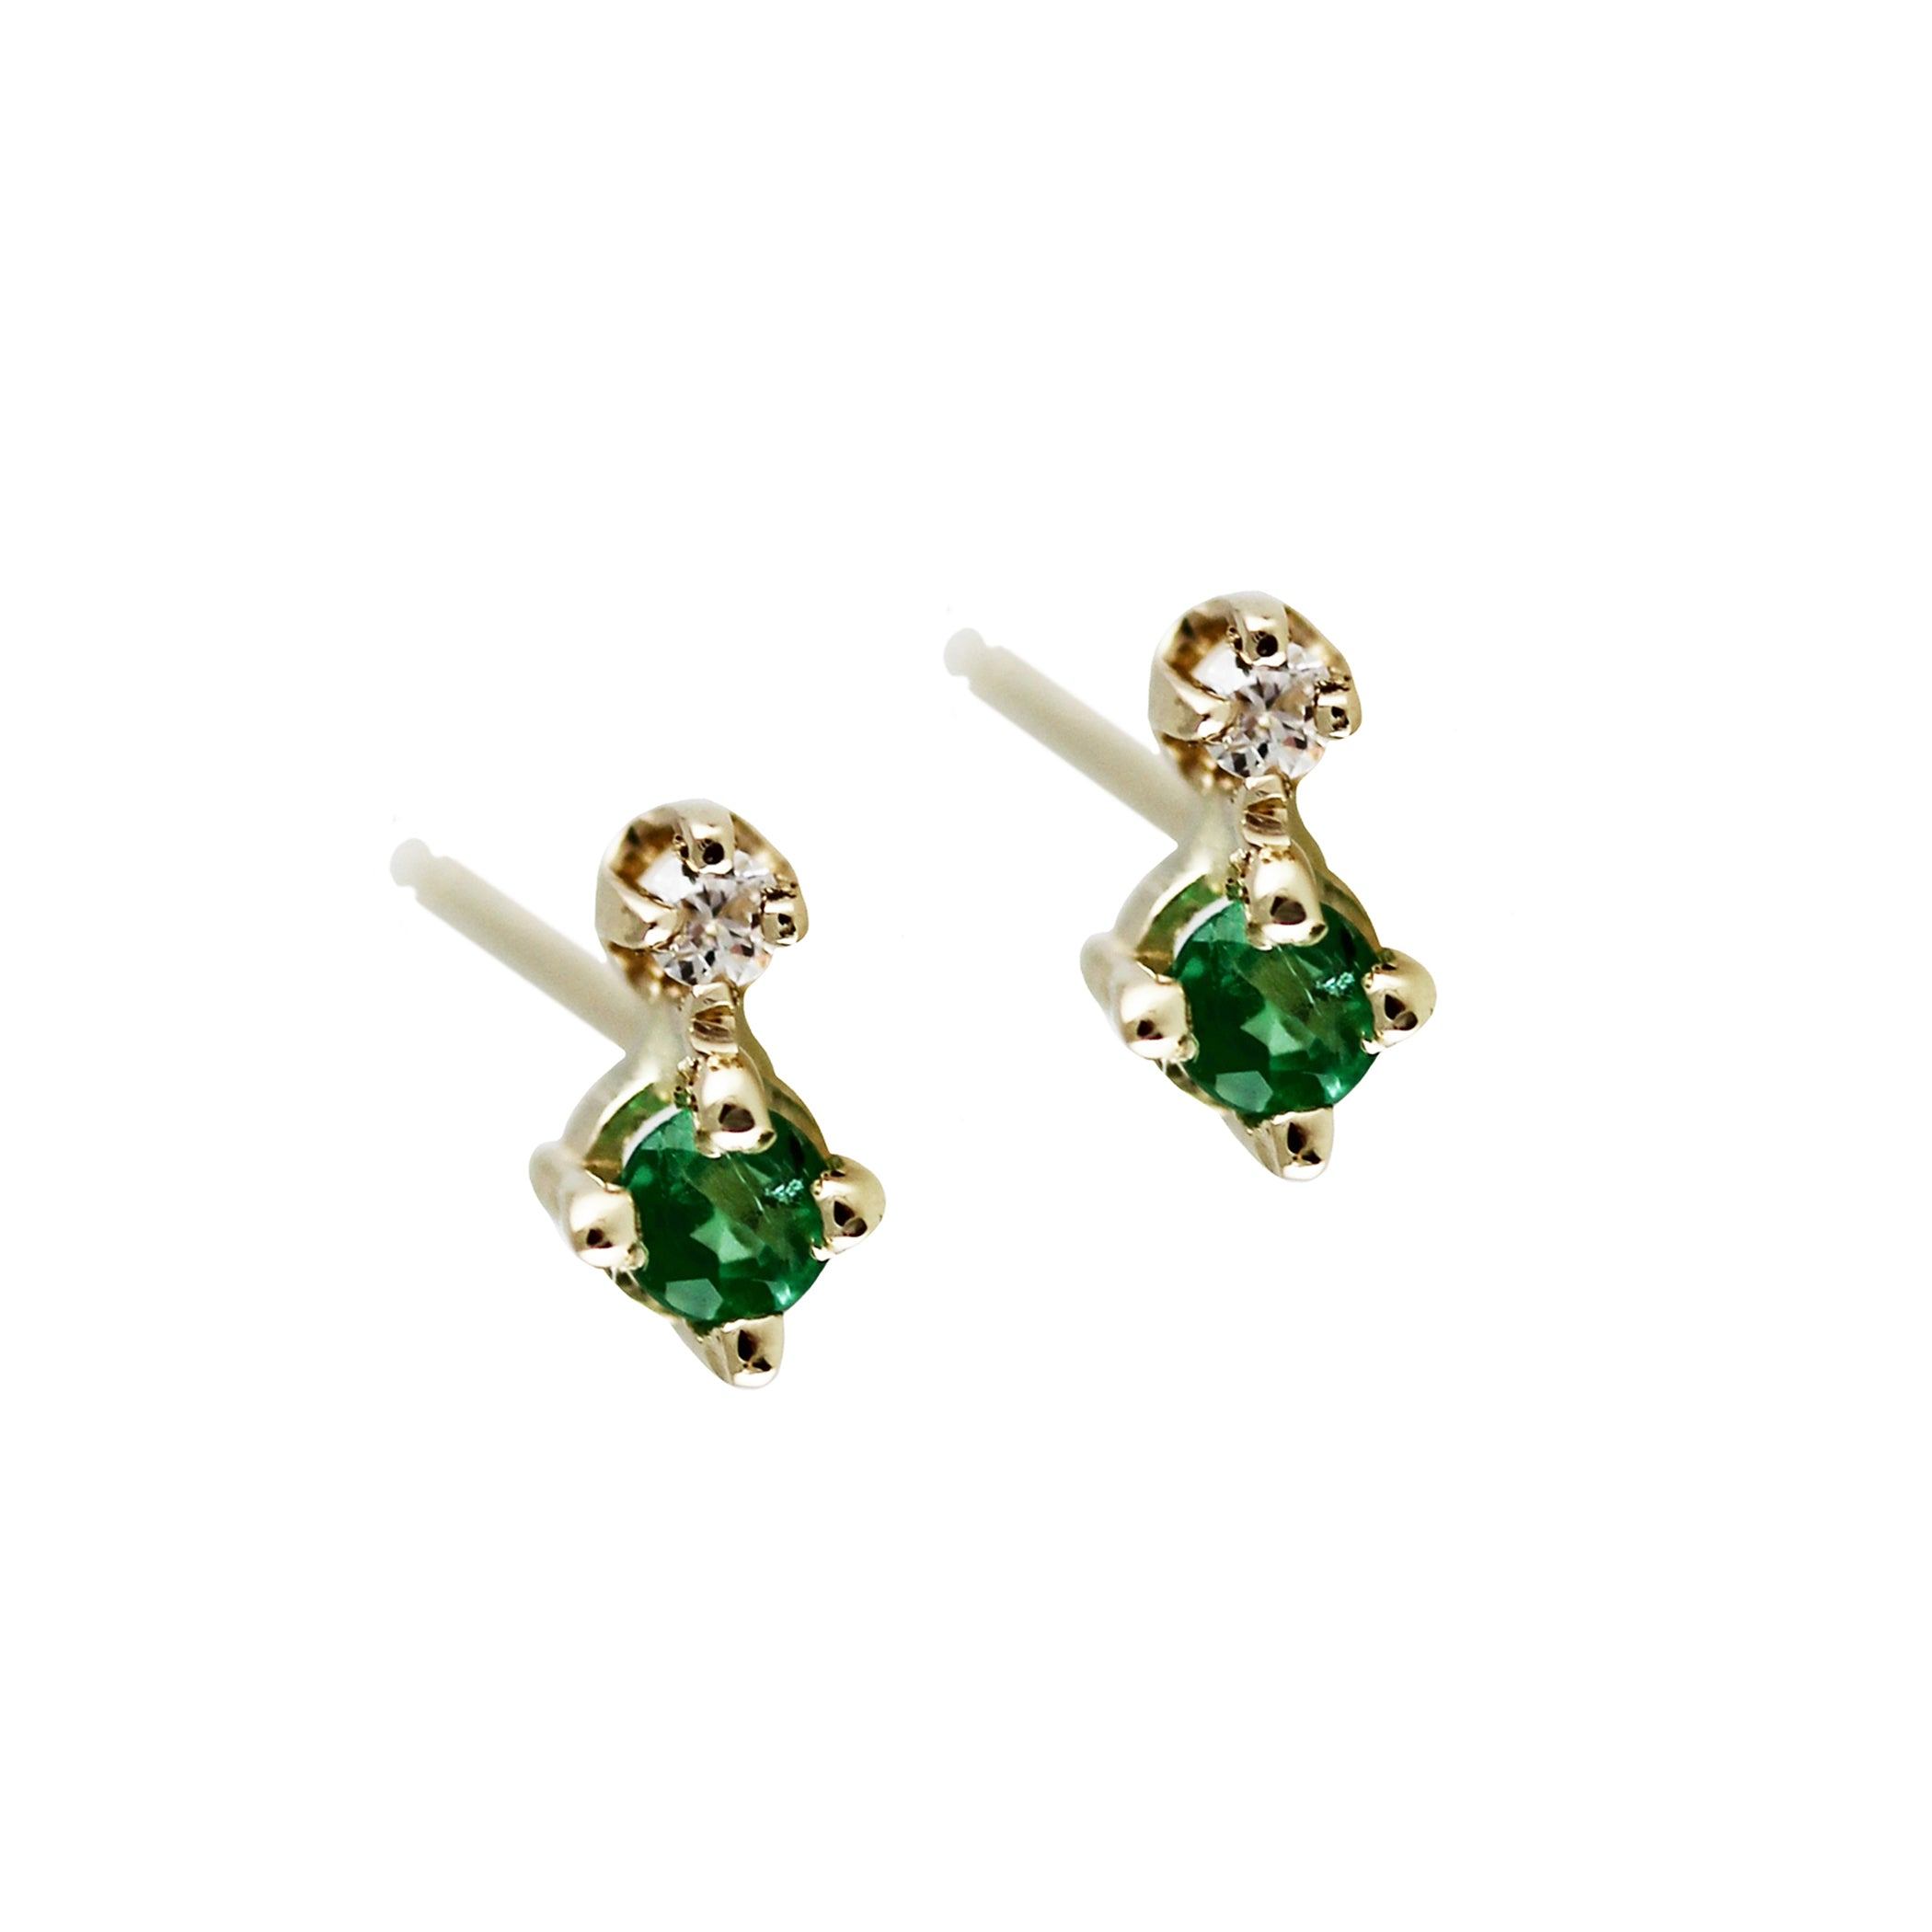 TINY EMERALD AND DIAMOND STUD